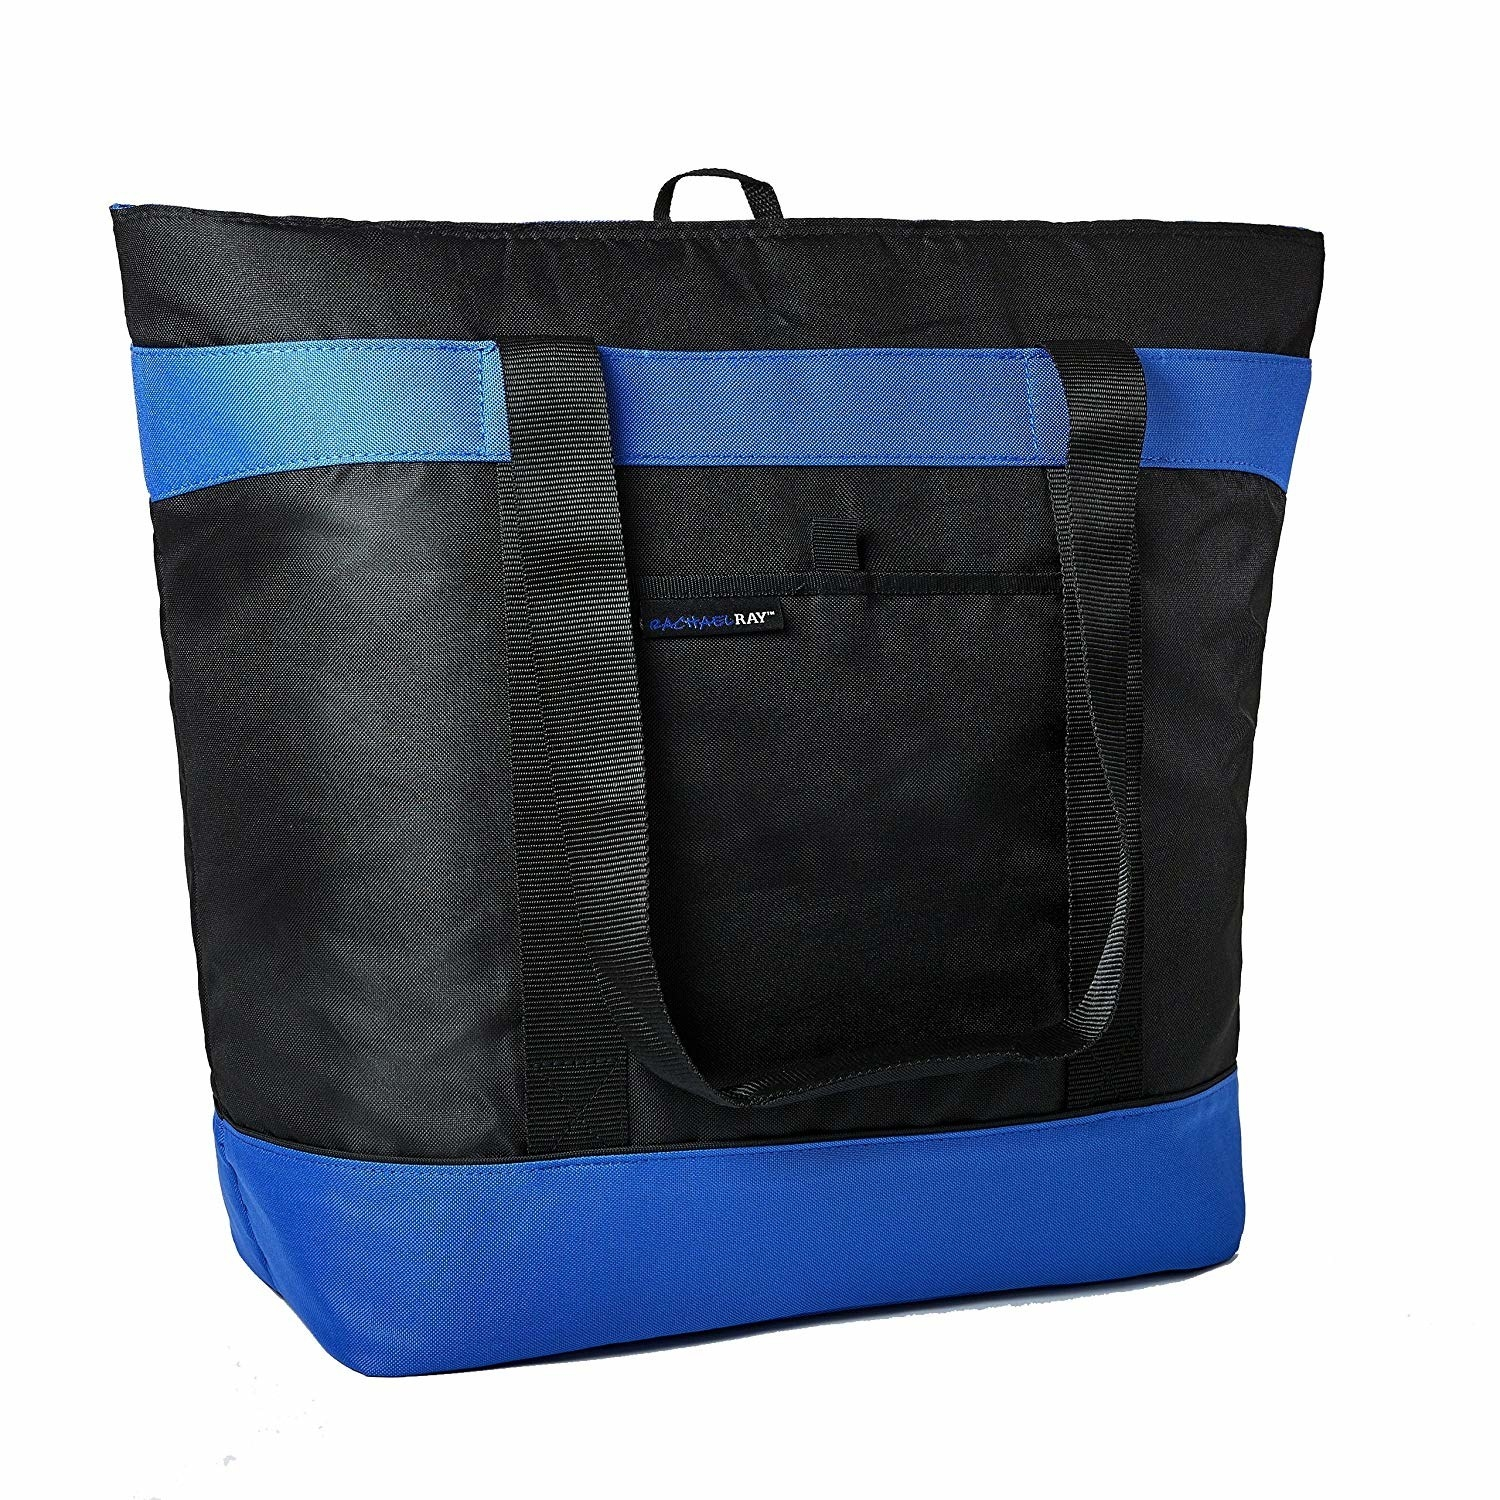 the black nylon bag with blue stripes on the top and bottom